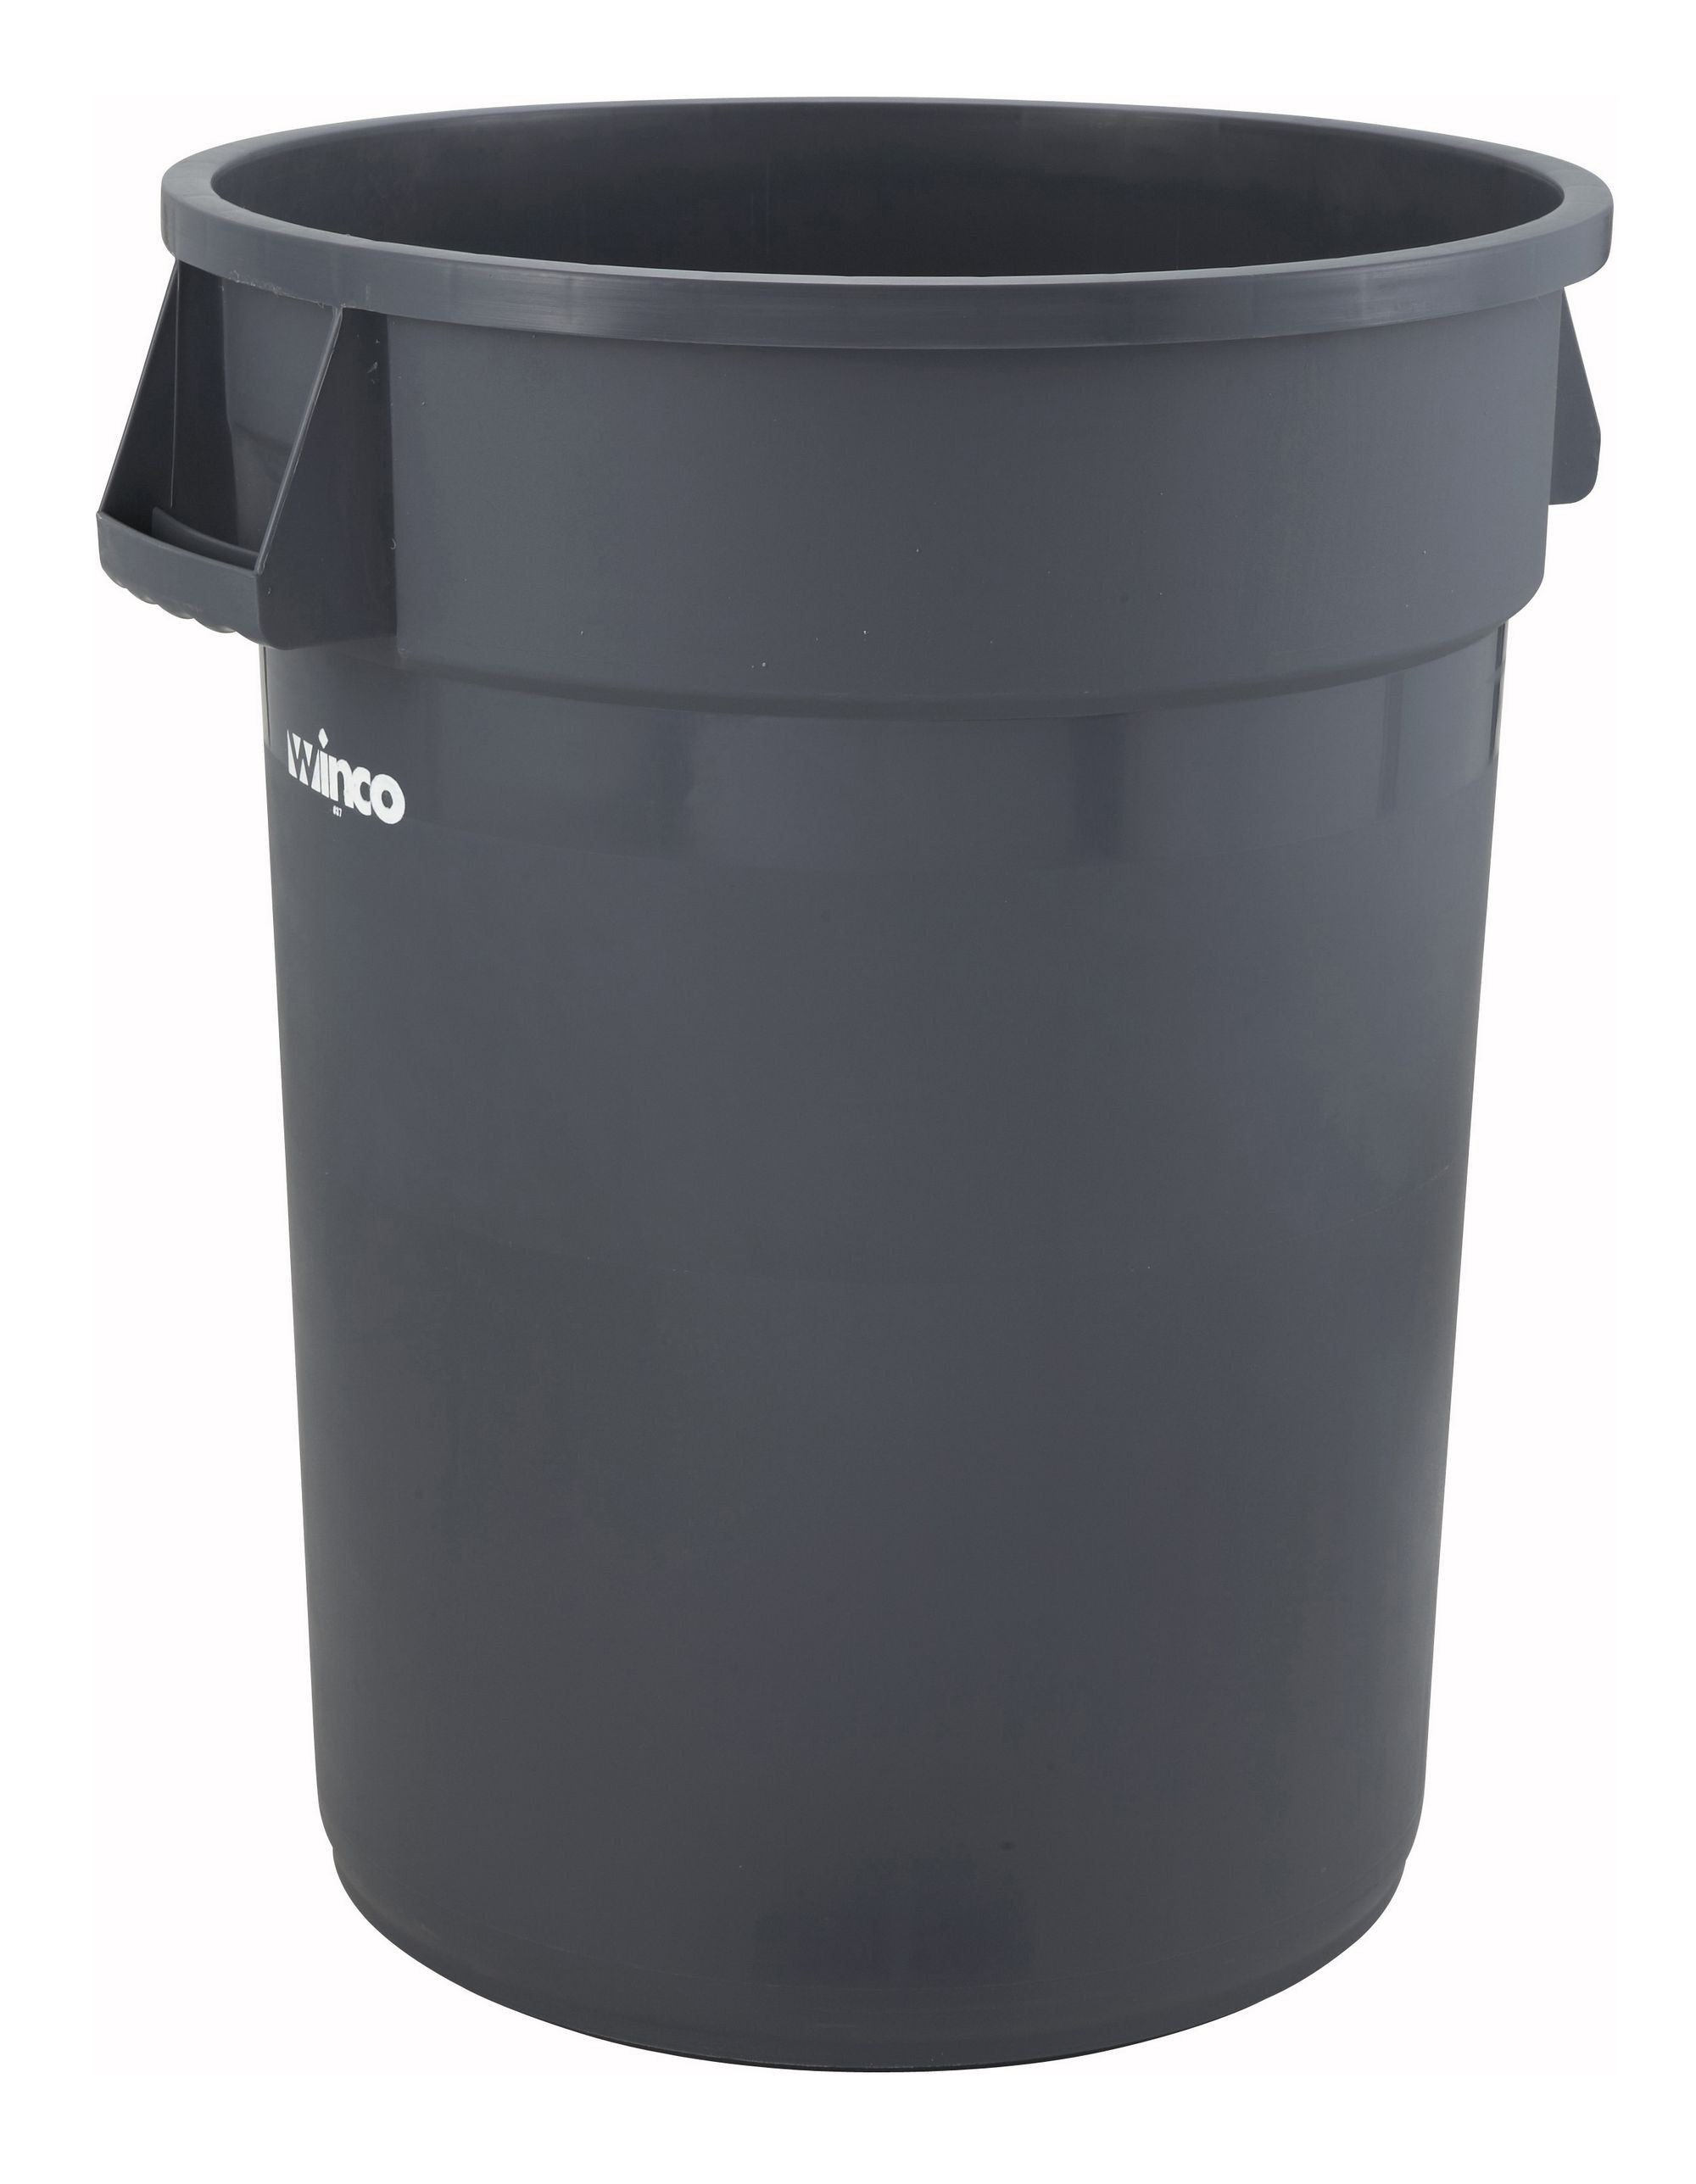 Winco PTC-44G Grey 44-Gallon Trash Can